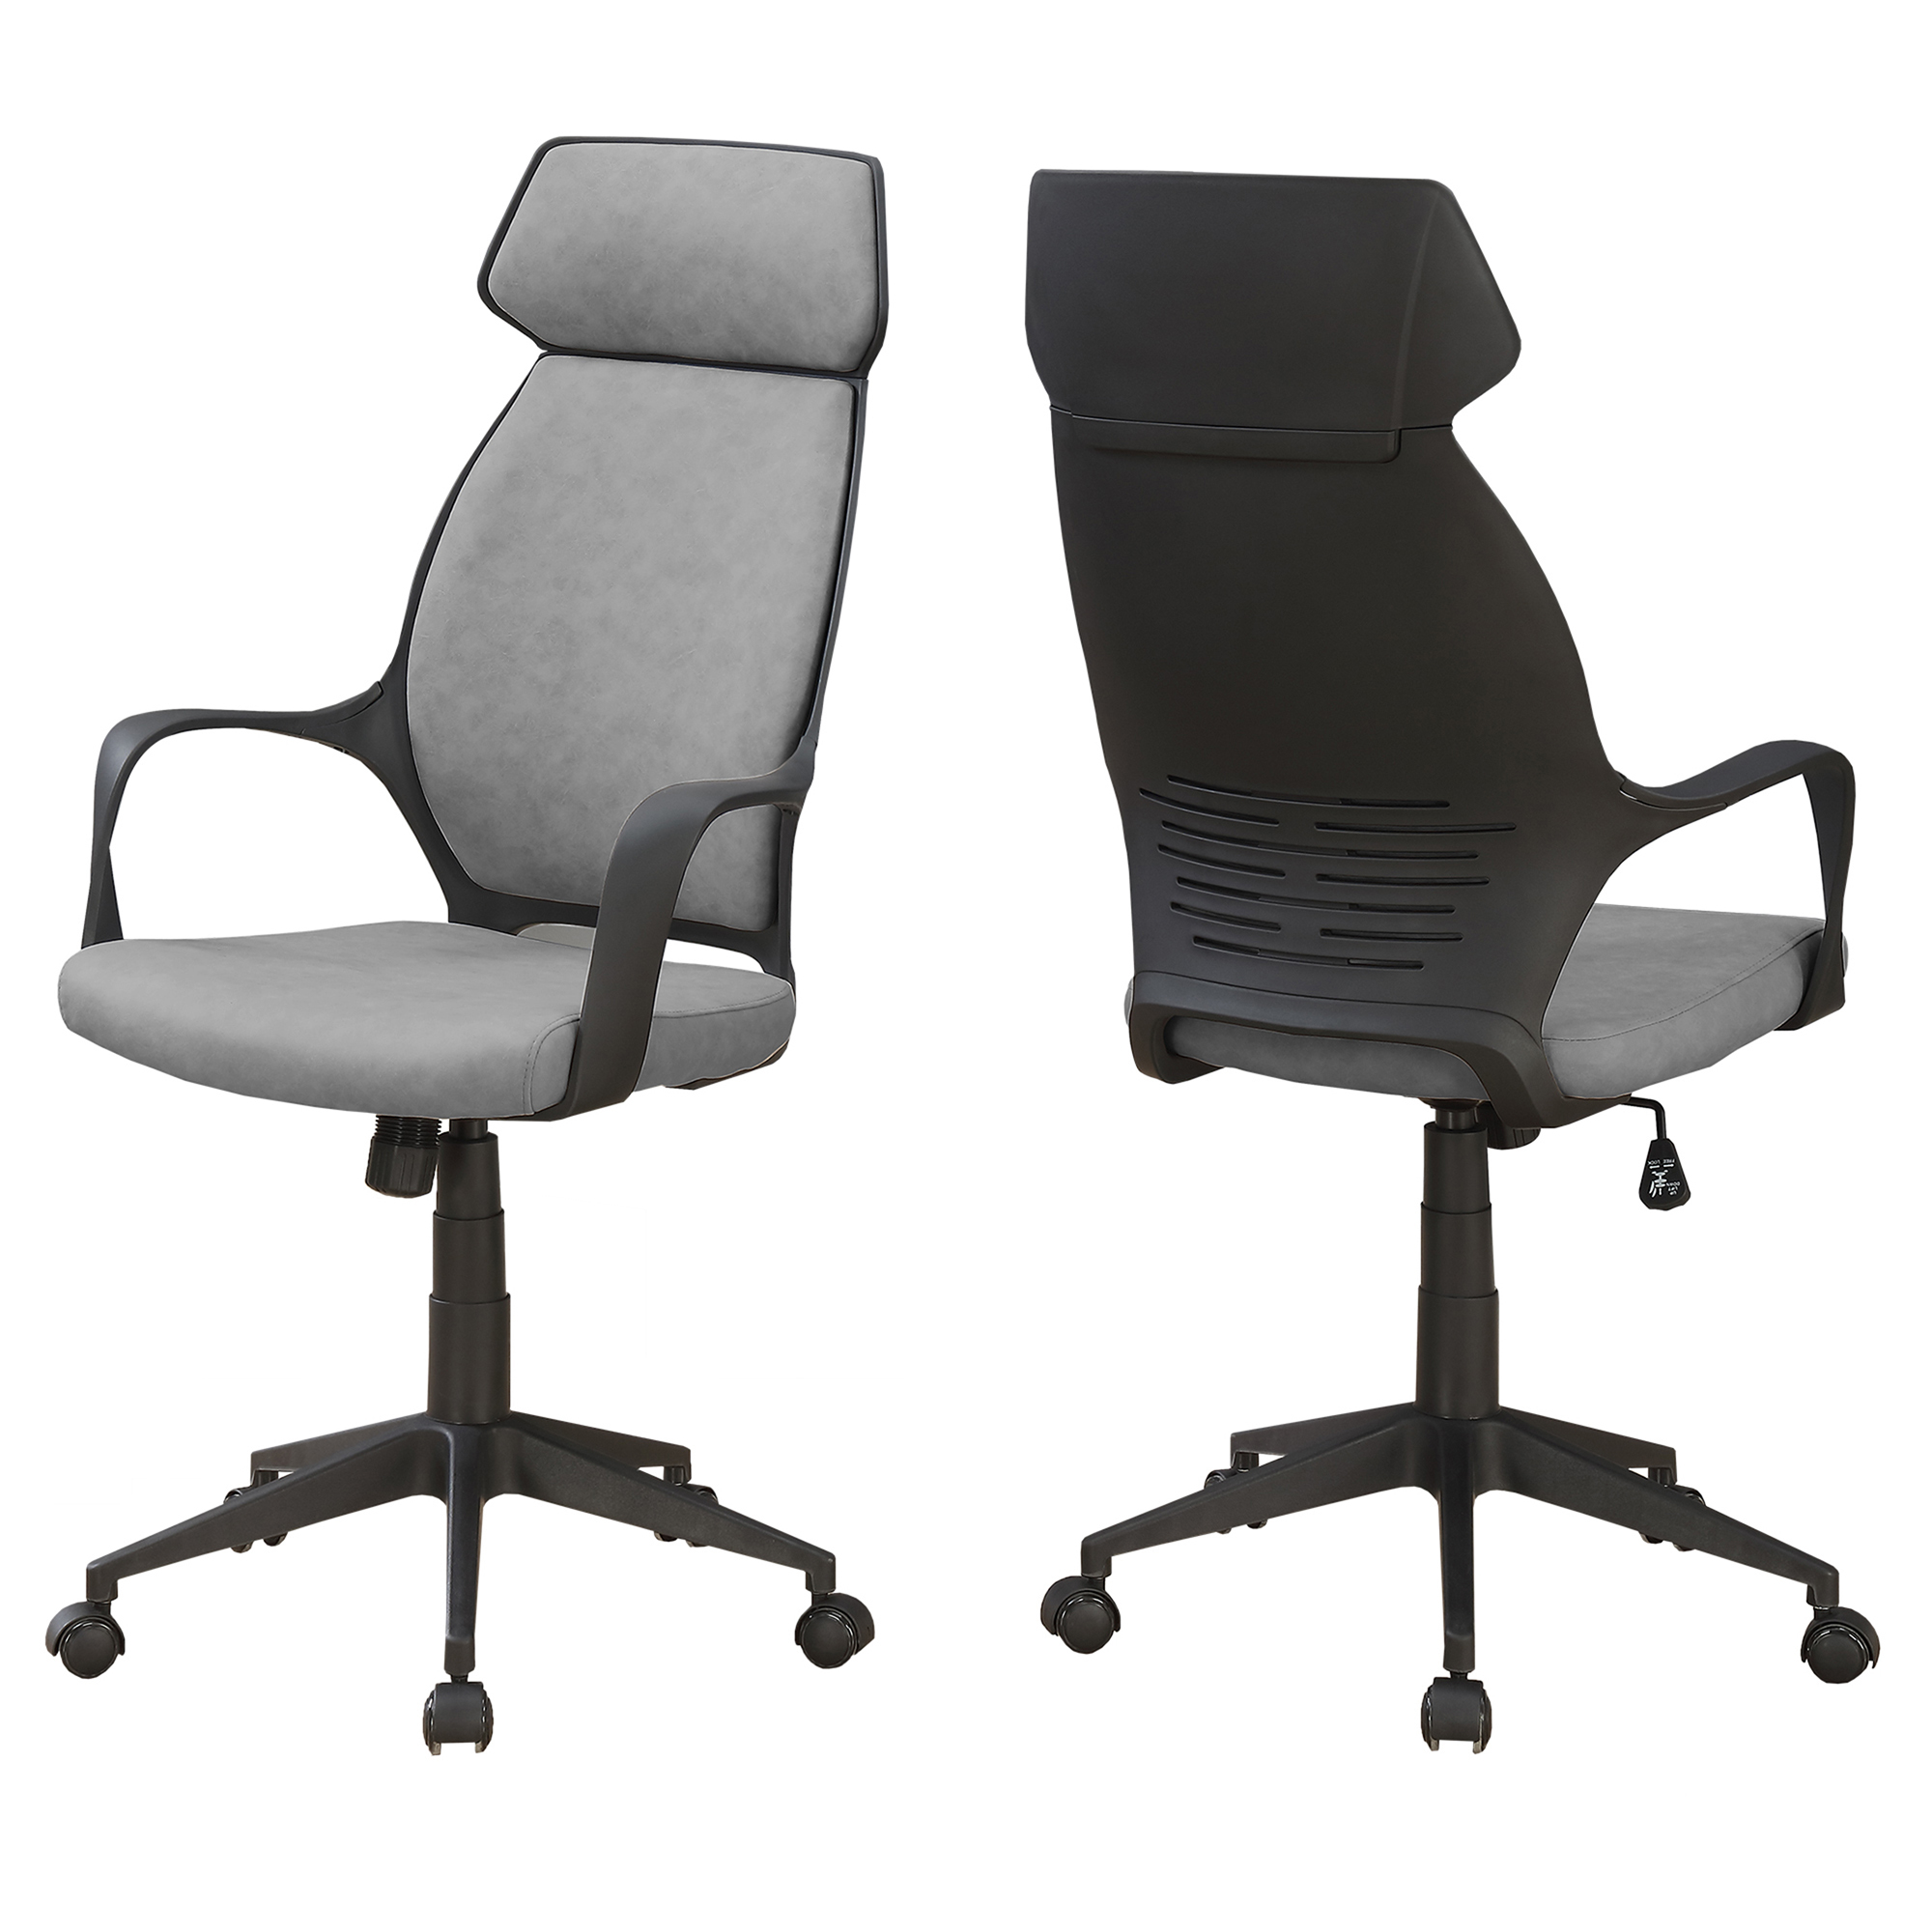 OFFICE CHAIR - GREY MICROFIBER / HIGH BACK EXECUTIVE